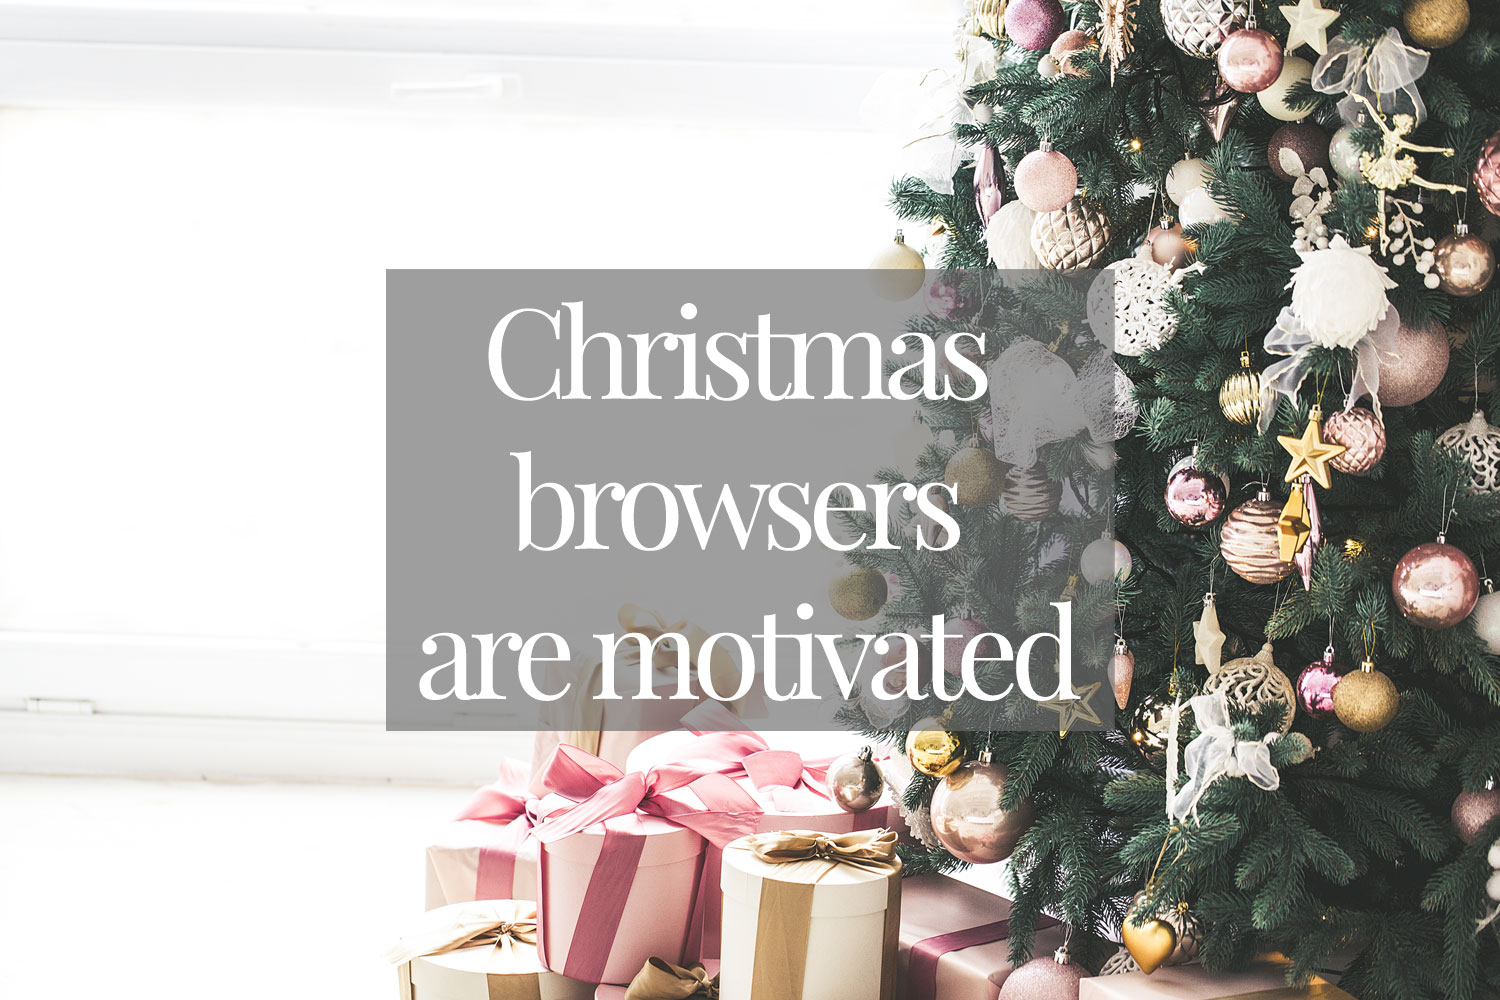 Christmas-browsers-are-motivated